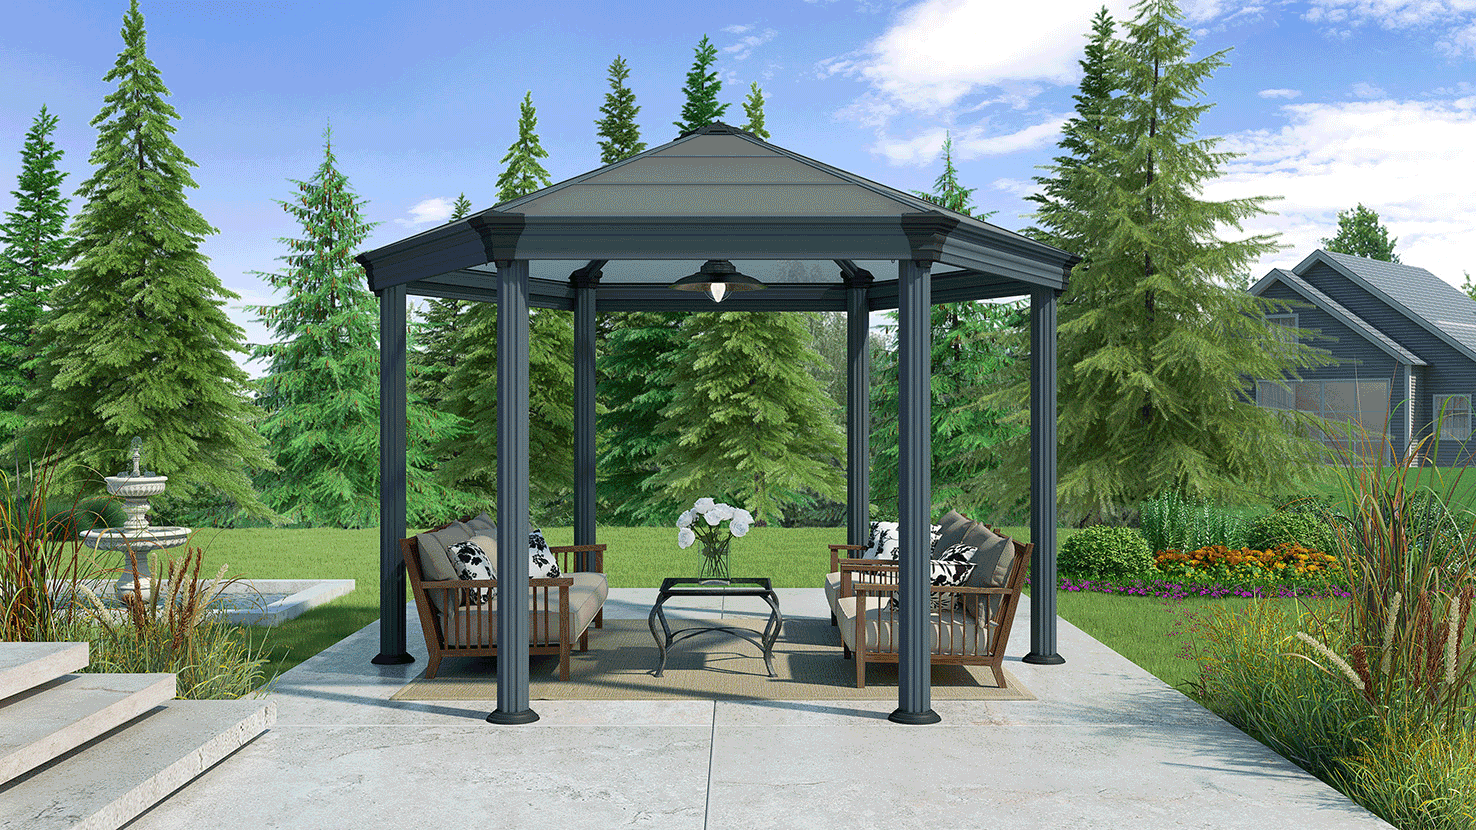 burlington garden gazebo the canopy shop. Black Bedroom Furniture Sets. Home Design Ideas